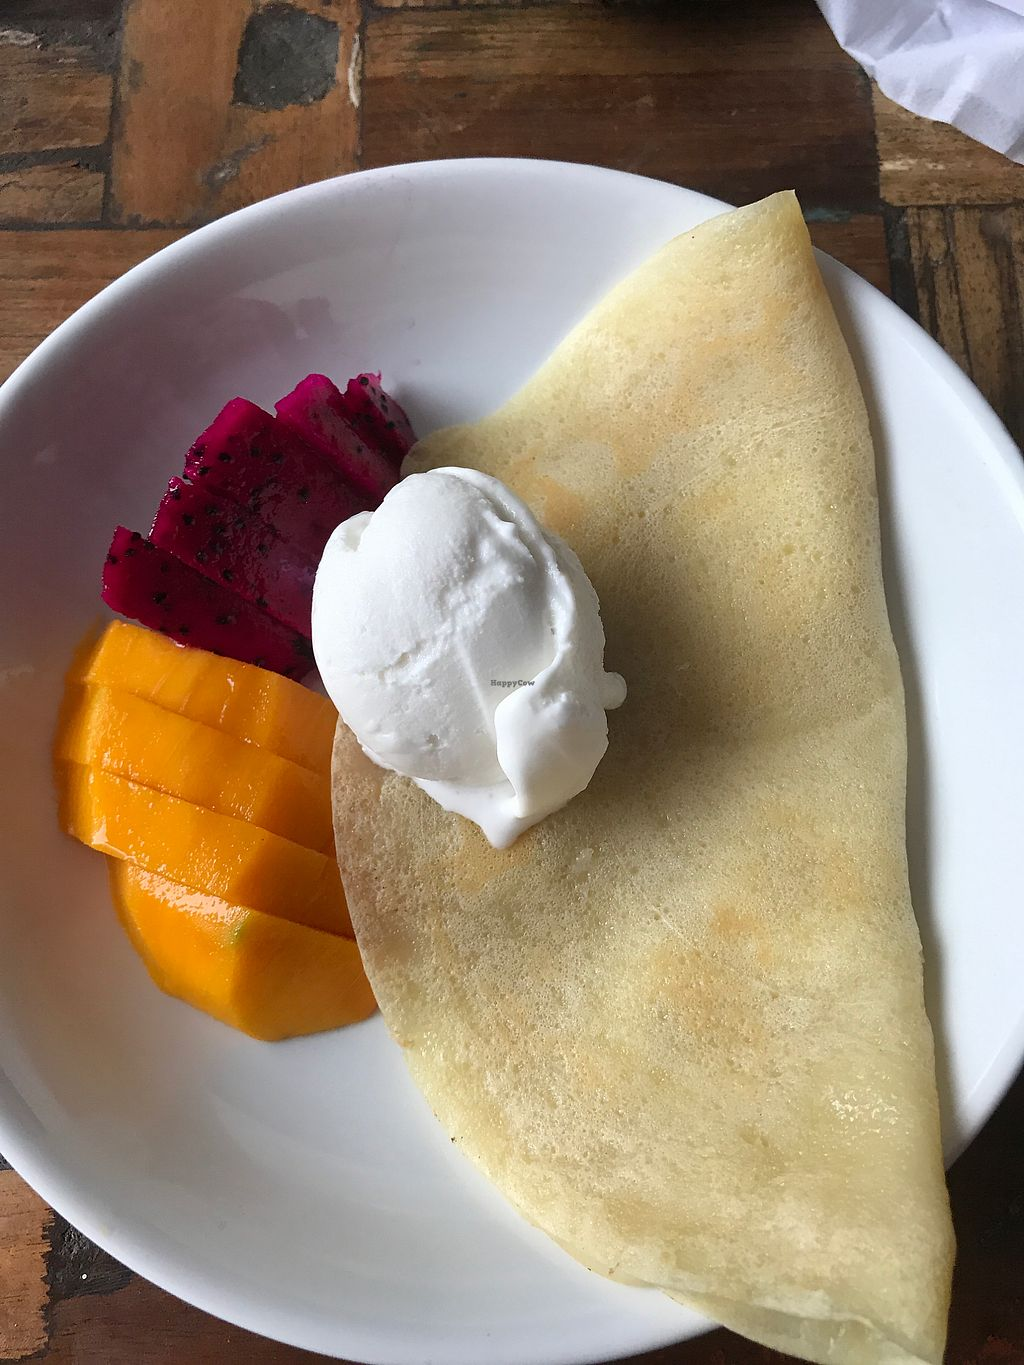 """Photo of Tasty Vegan - Poppies  by <a href=""""/members/profile/rehinathevegan"""">rehinathevegan</a> <br/>Vegan pancake with ice cream and fruit <br/> November 23, 2017  - <a href='/contact/abuse/image/105682/328307'>Report</a>"""